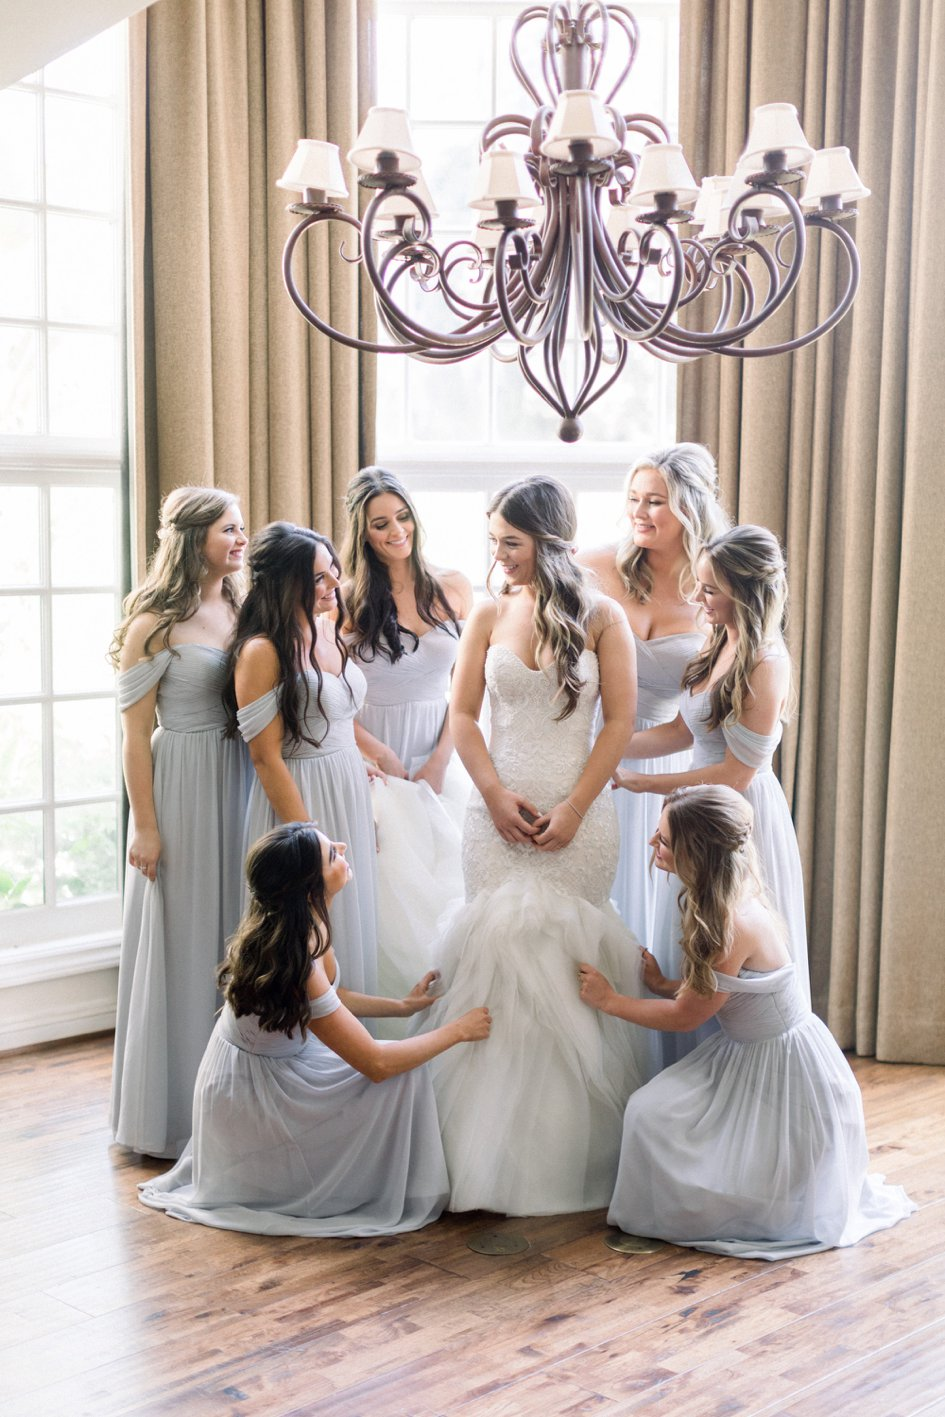 Real Wedding, California Wedding, Wedding Inspiration, Weddings, Tracy Schmidt Weddings, Lucas Rossi Photography, Sherwood Country Club